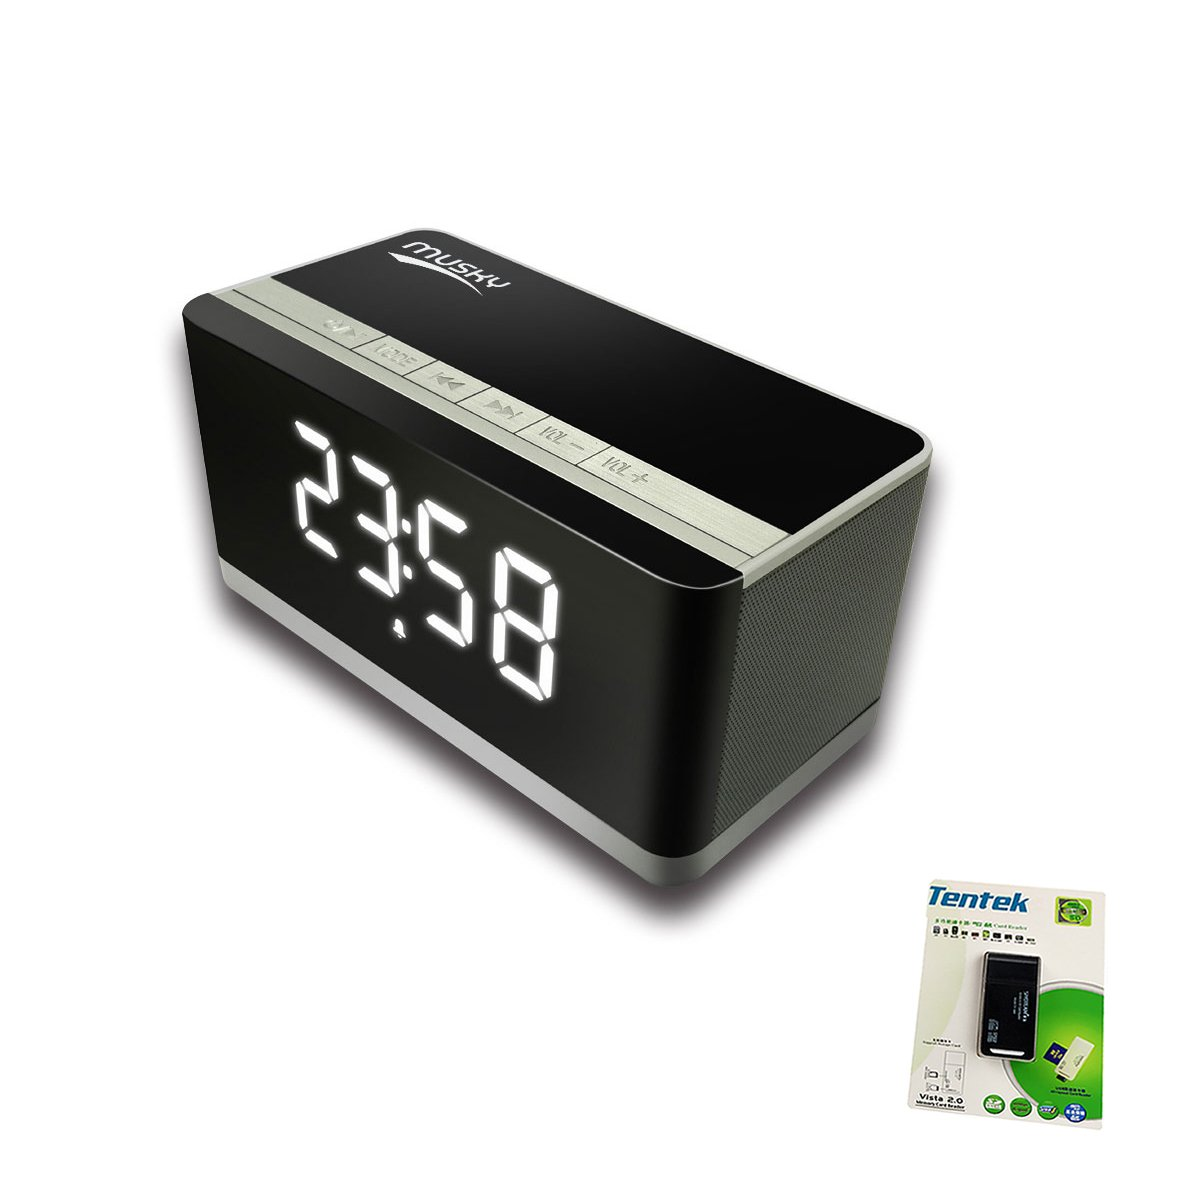 Portable Bluetooth Speaker + Touch Sensor Music Reactive Multi-color LED Night Light , with LED Display, Handsfree Speakerphone, Alarm Clock, Micro SD Card & USB & AUX Slots for Smart Phone, MP3, iPad and Tablet i-tentek 4336685349